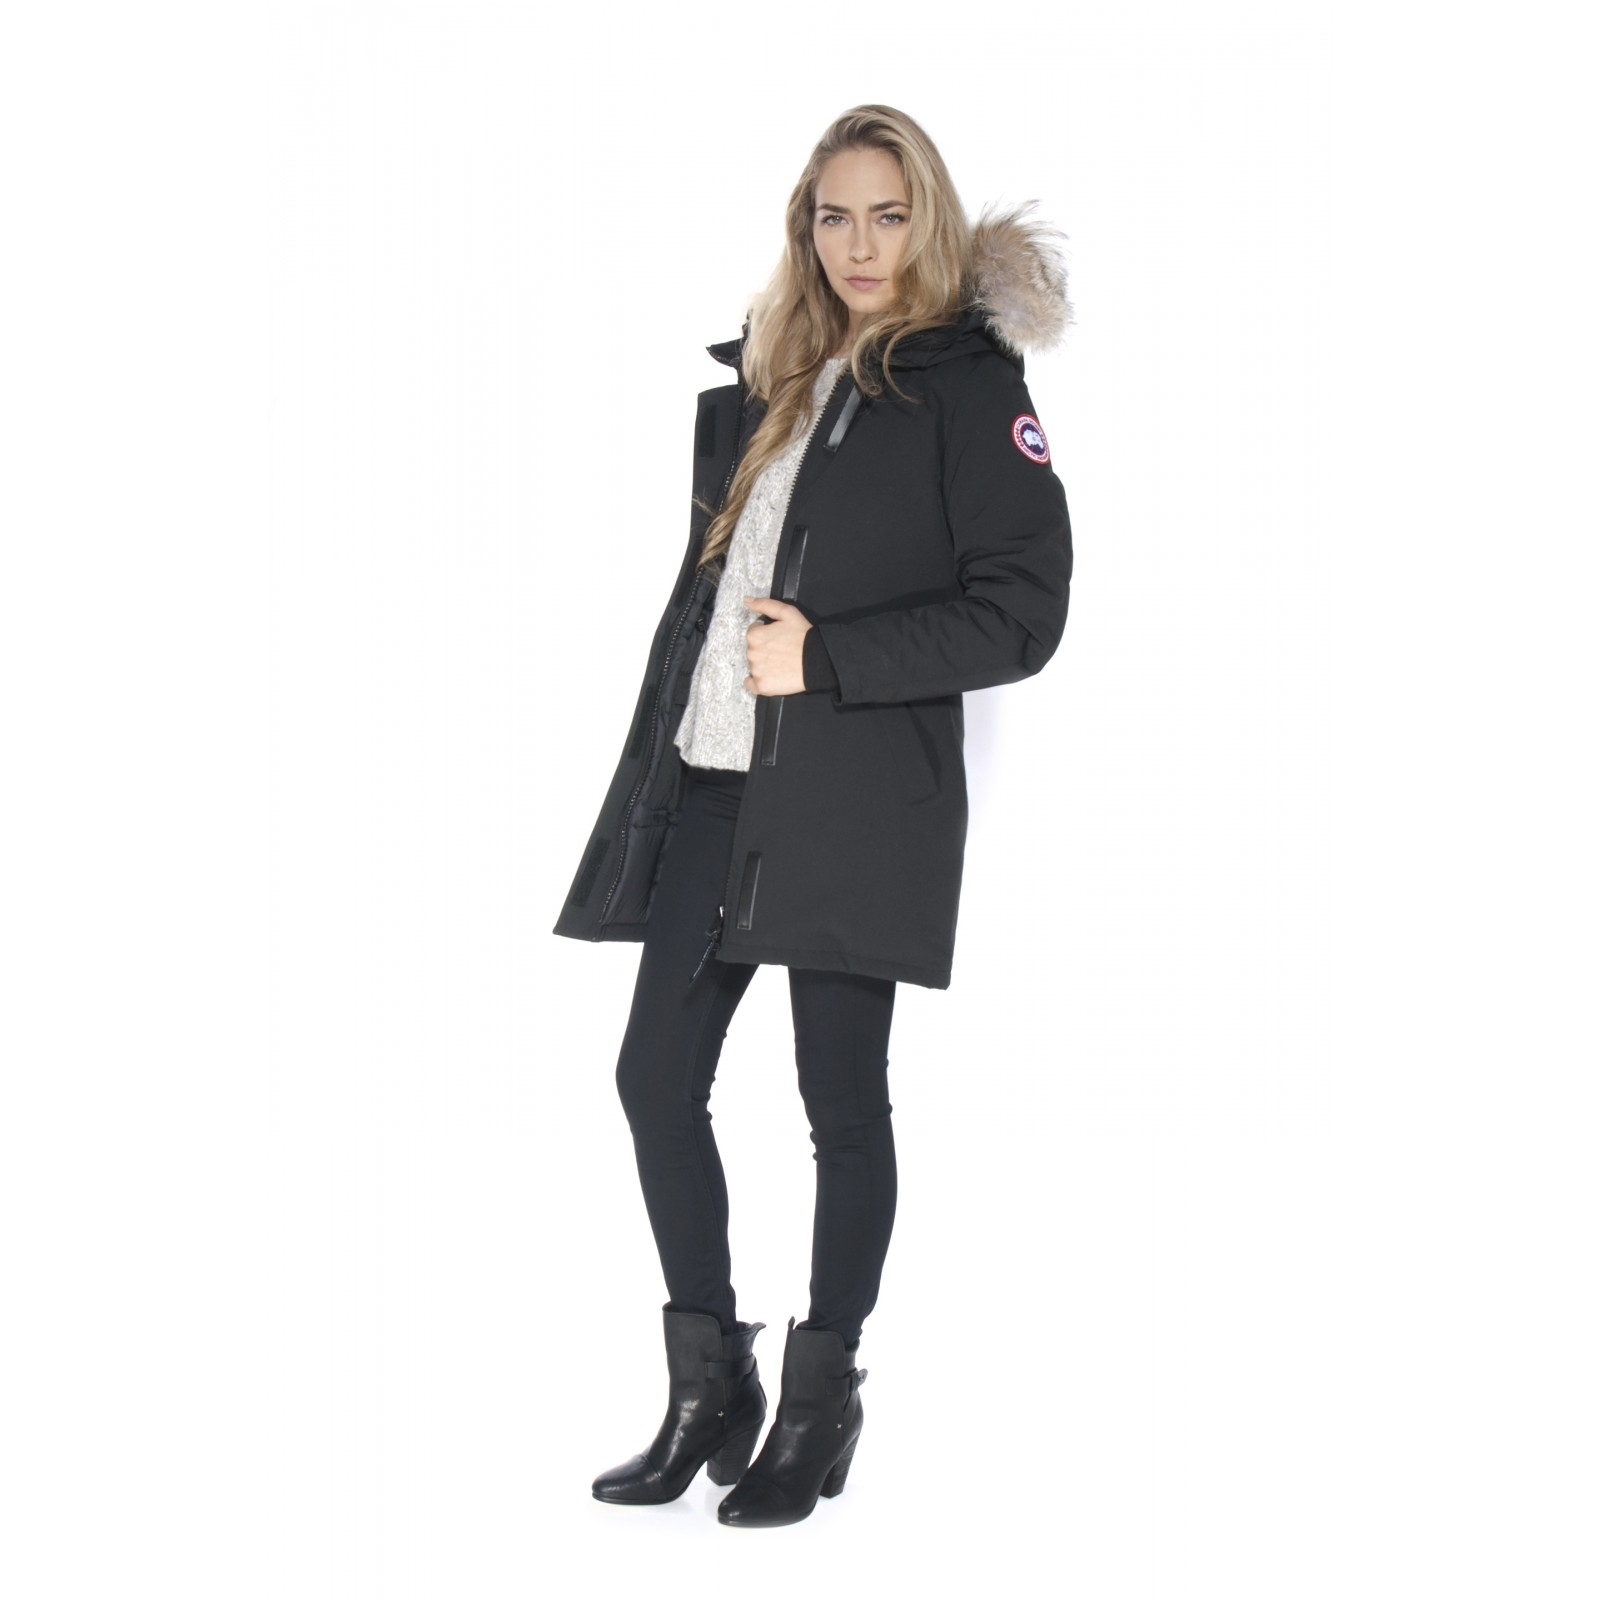 Canada Goose parka outlet authentic - Canada Goose Victoria | Shop Canada Goose Victoria Parka on Lyst.com